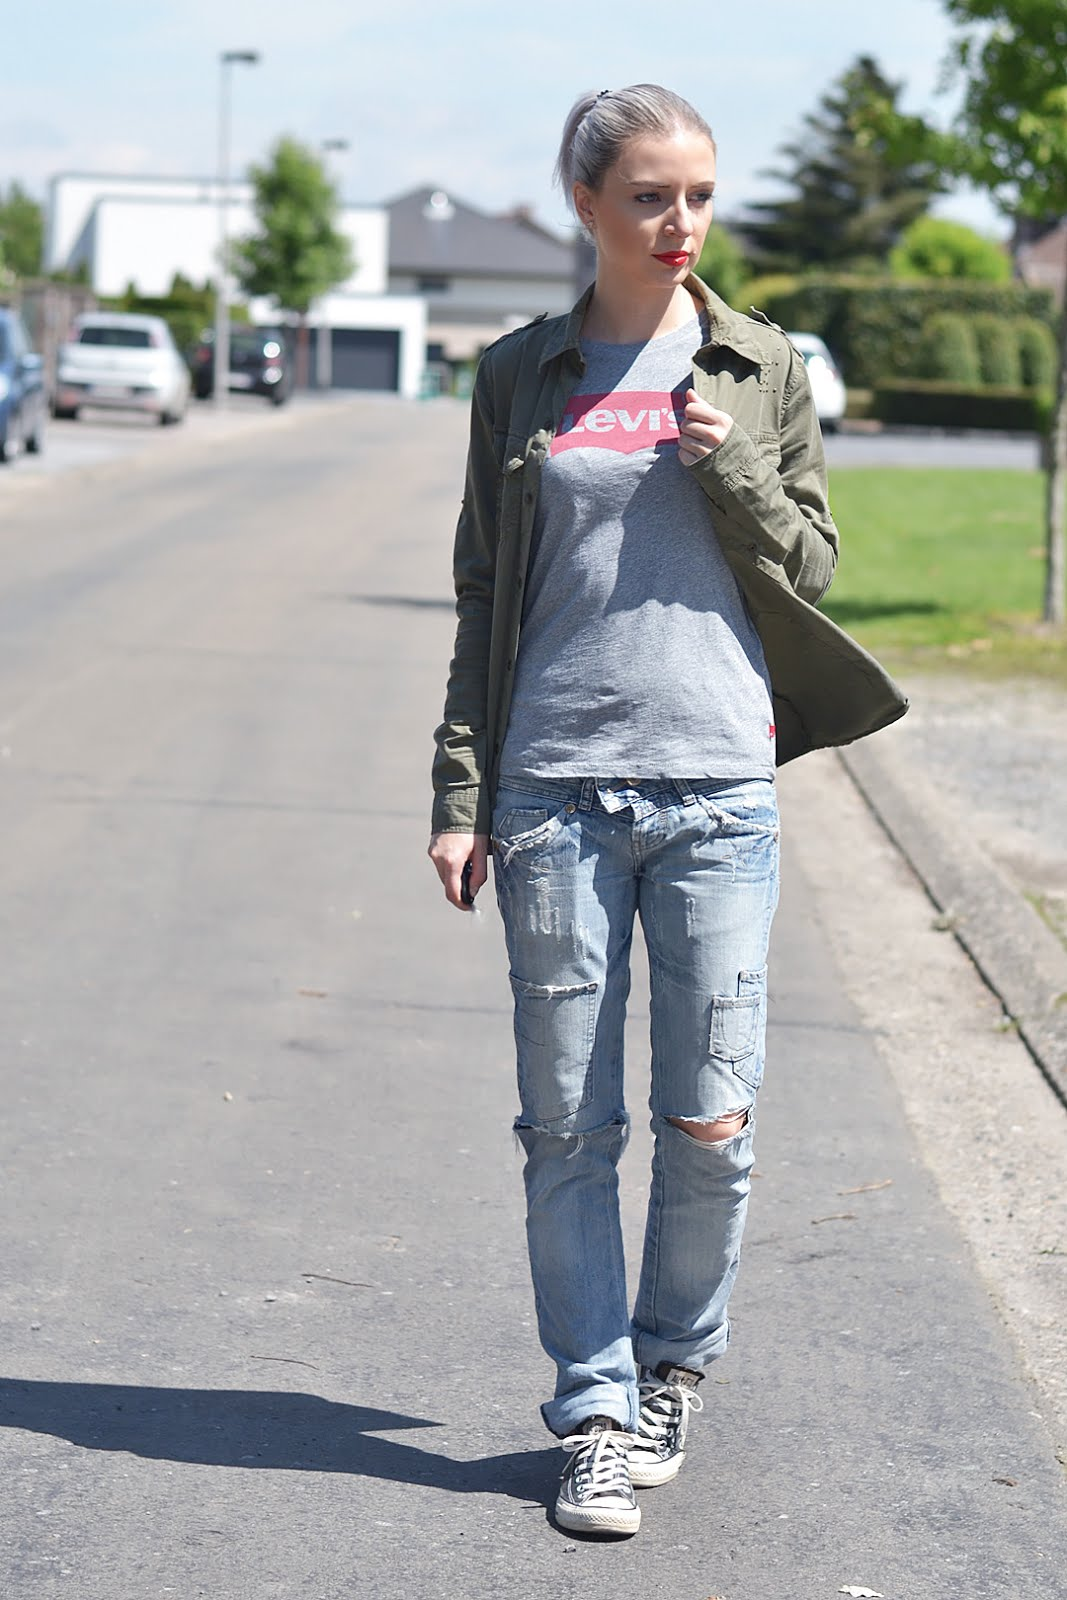 Military shirt, levi's logo t-shirt, ripped denim jeans, converse all star, laidback, street style, belgische mode blogger, belgian fashion blogger